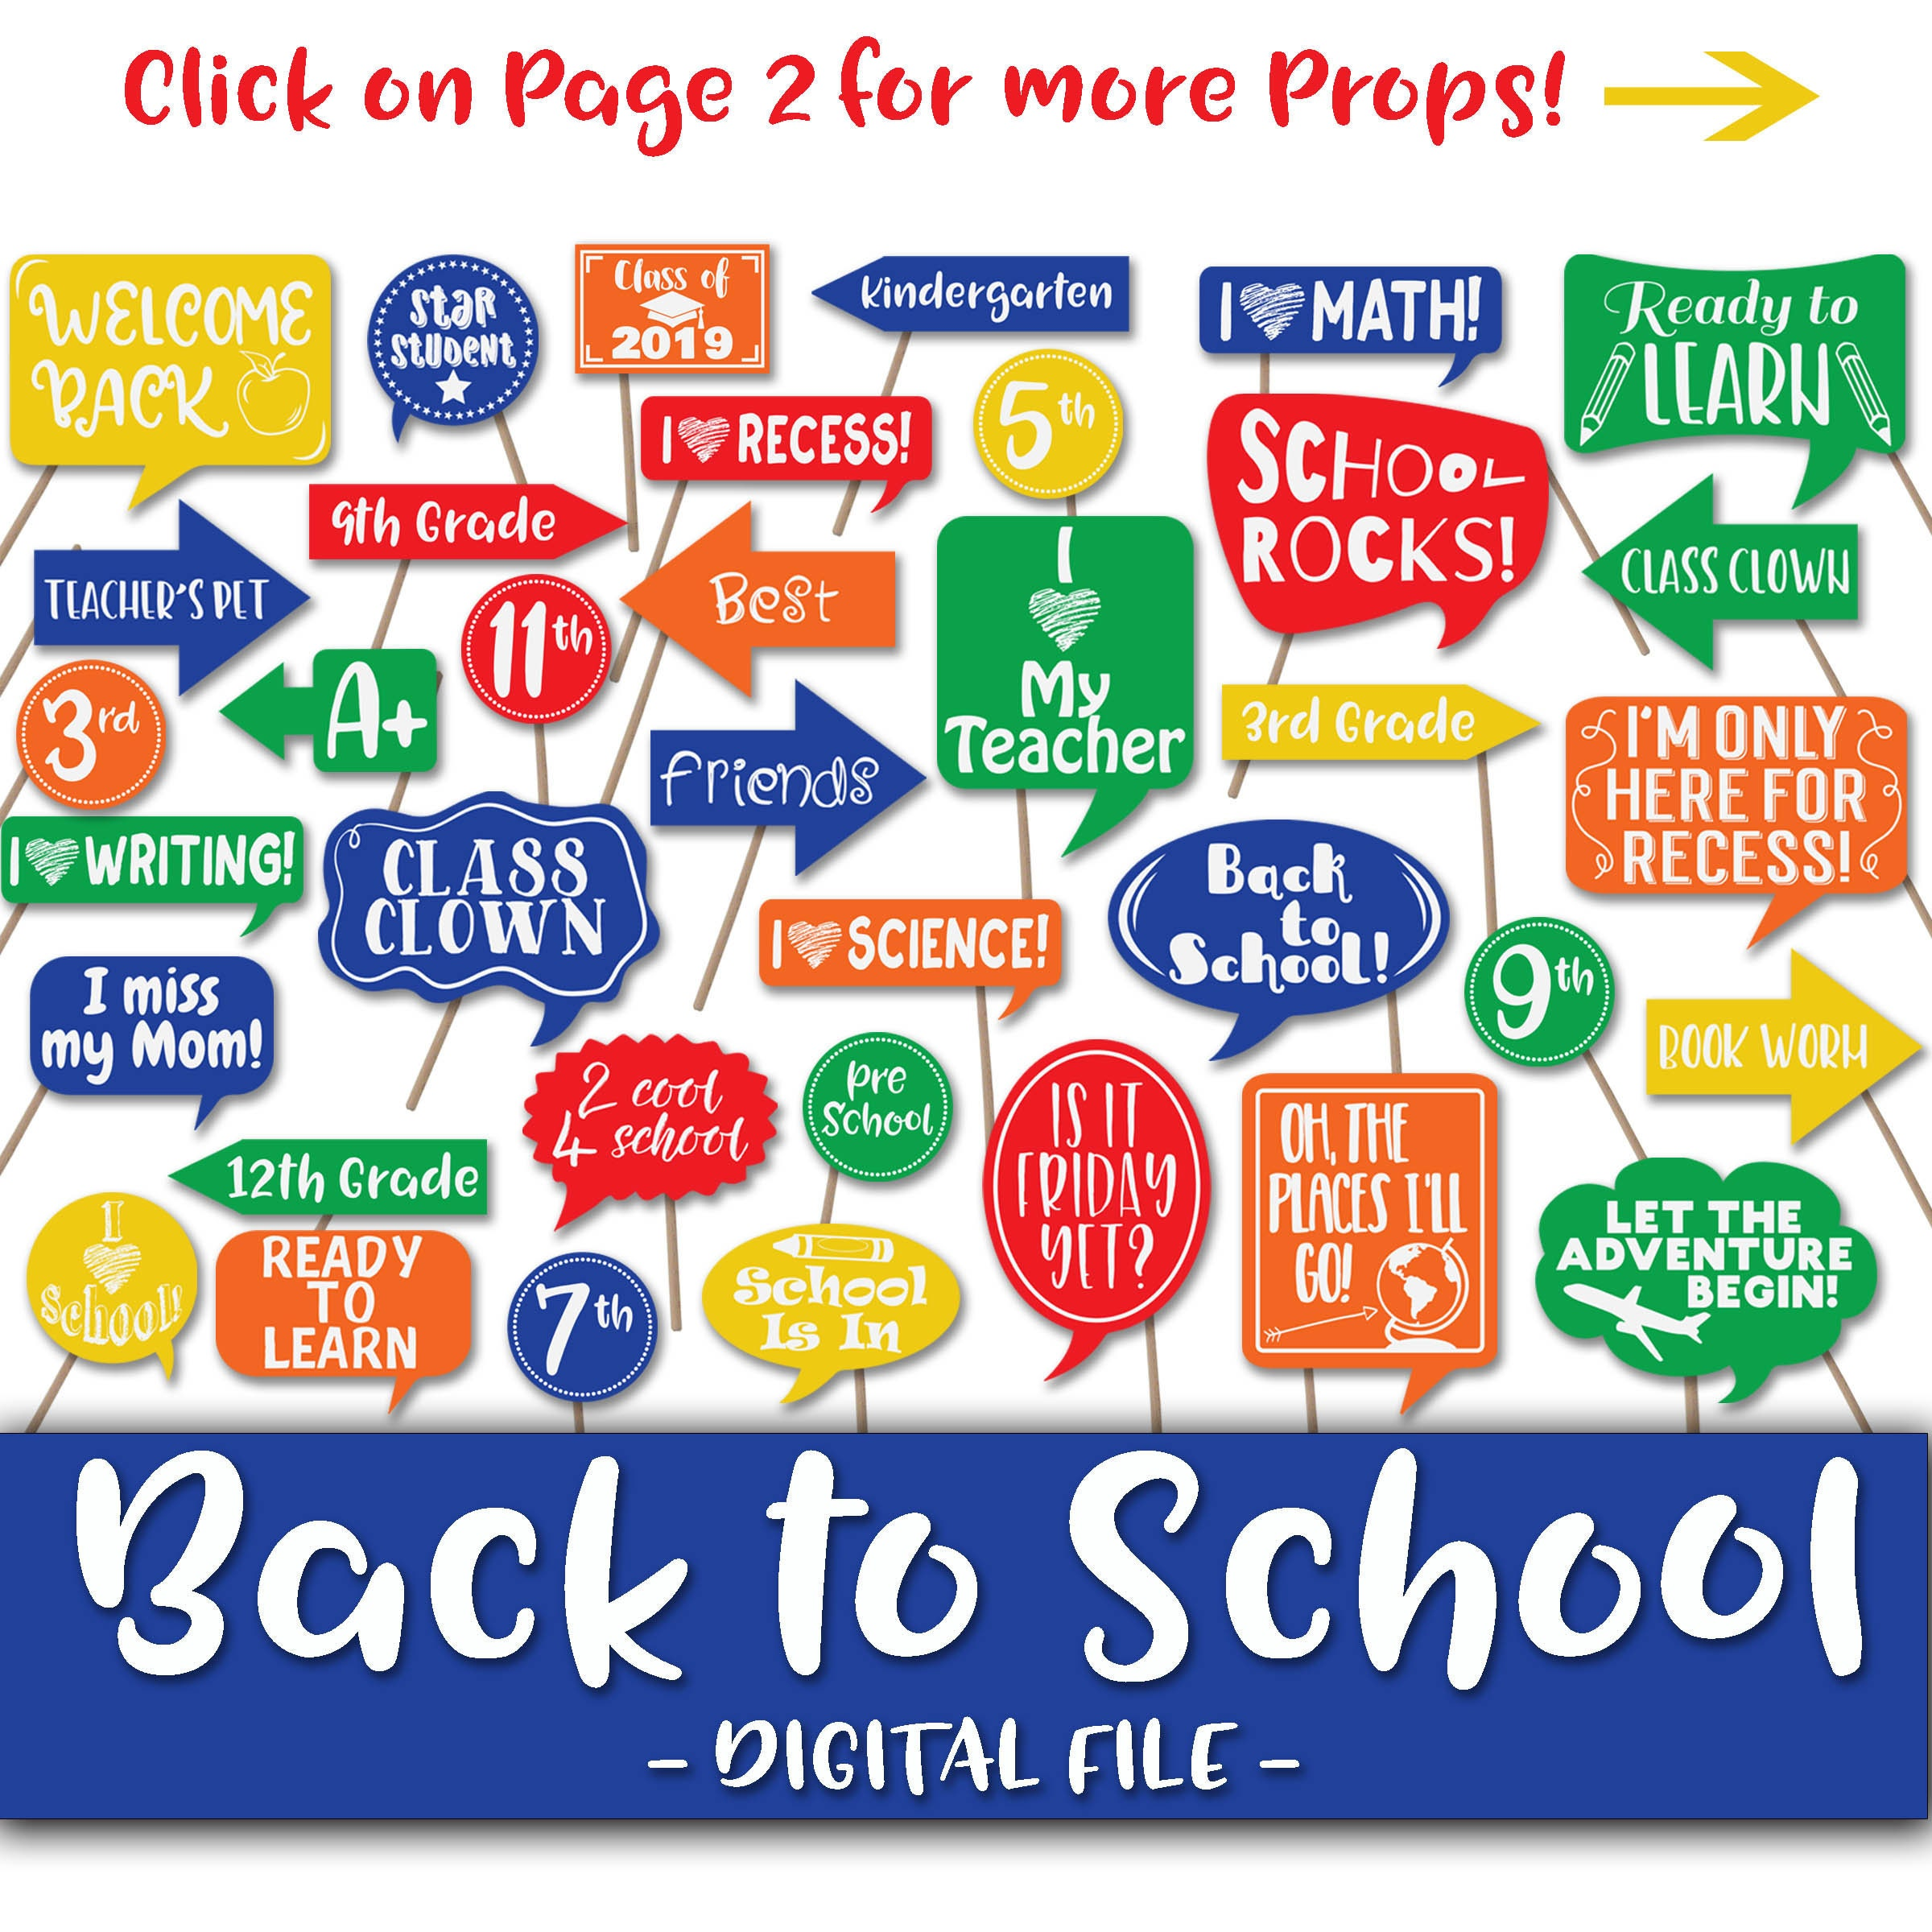 Back To School Photo Booth Props and Decorations - First Day of School  Photo Props - Colorful Printable School Signs - Digital PDF File